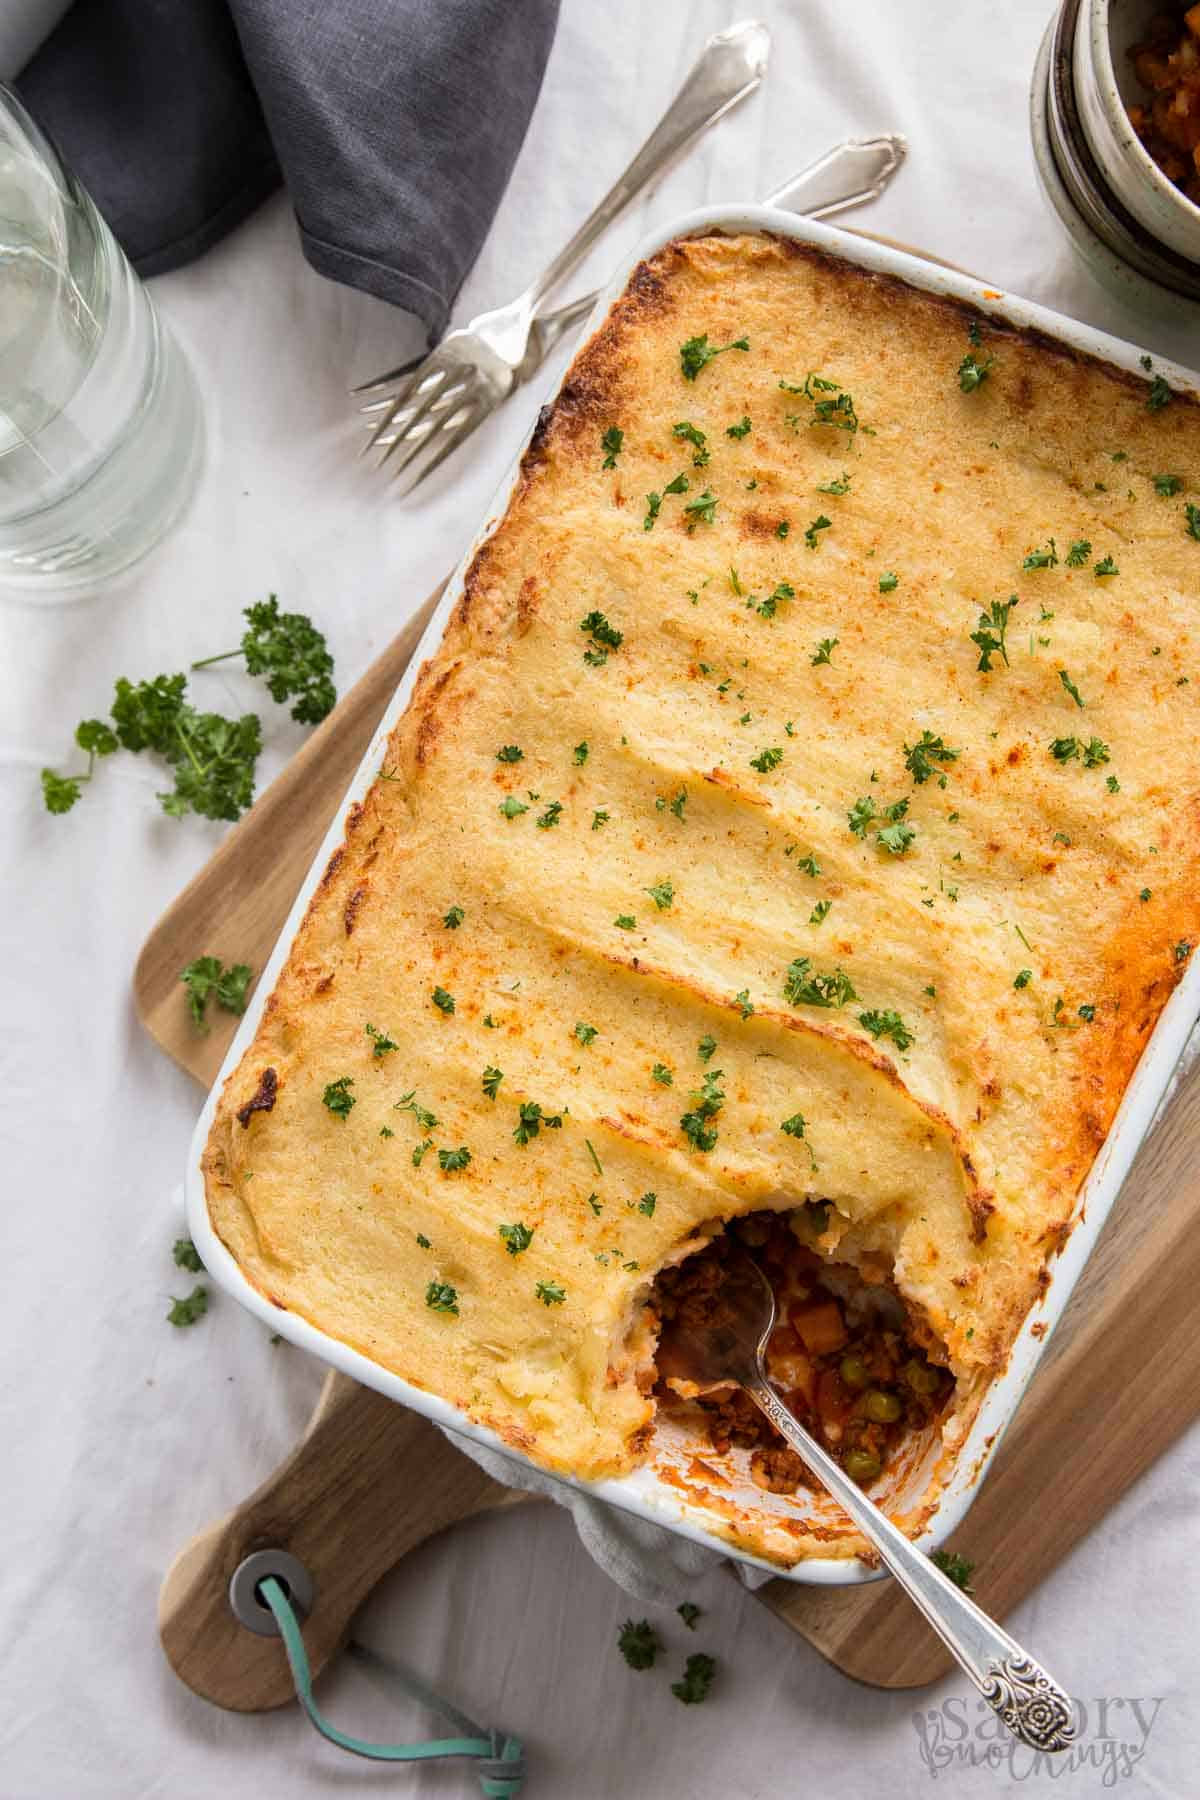 Sneak Extra Veggies Into Your Familys Diet With This Veggie Loaded Easy Cottage Pie Comes